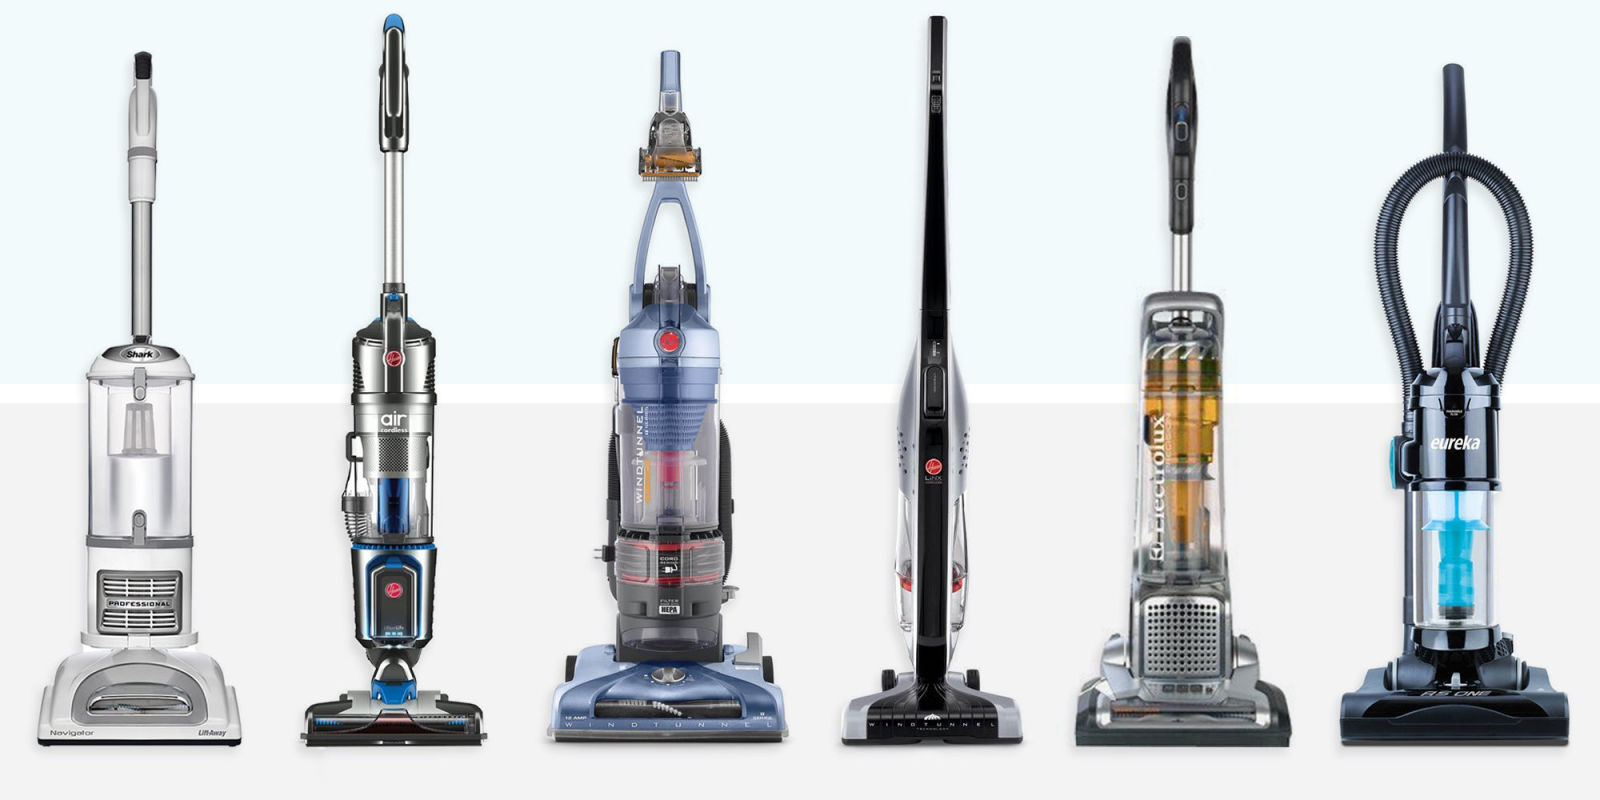 20 best vacuum cleaners in 2017 - top dyson, shark & hoover